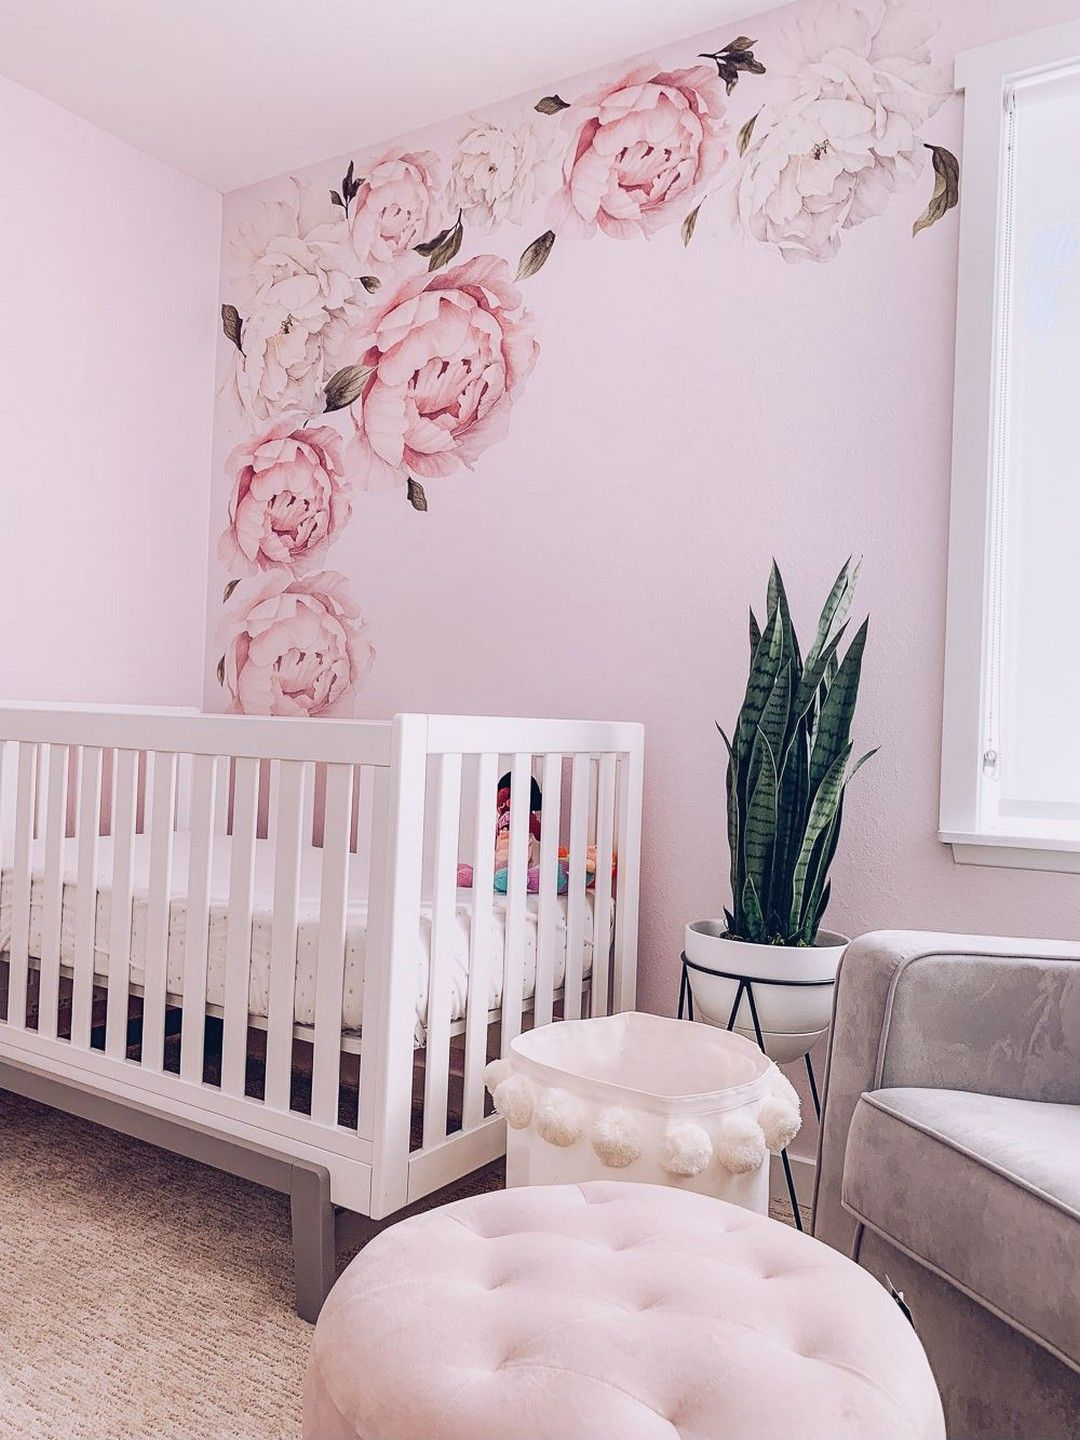 76 Floral Nursery With Images Floral Nursery Decor Floral